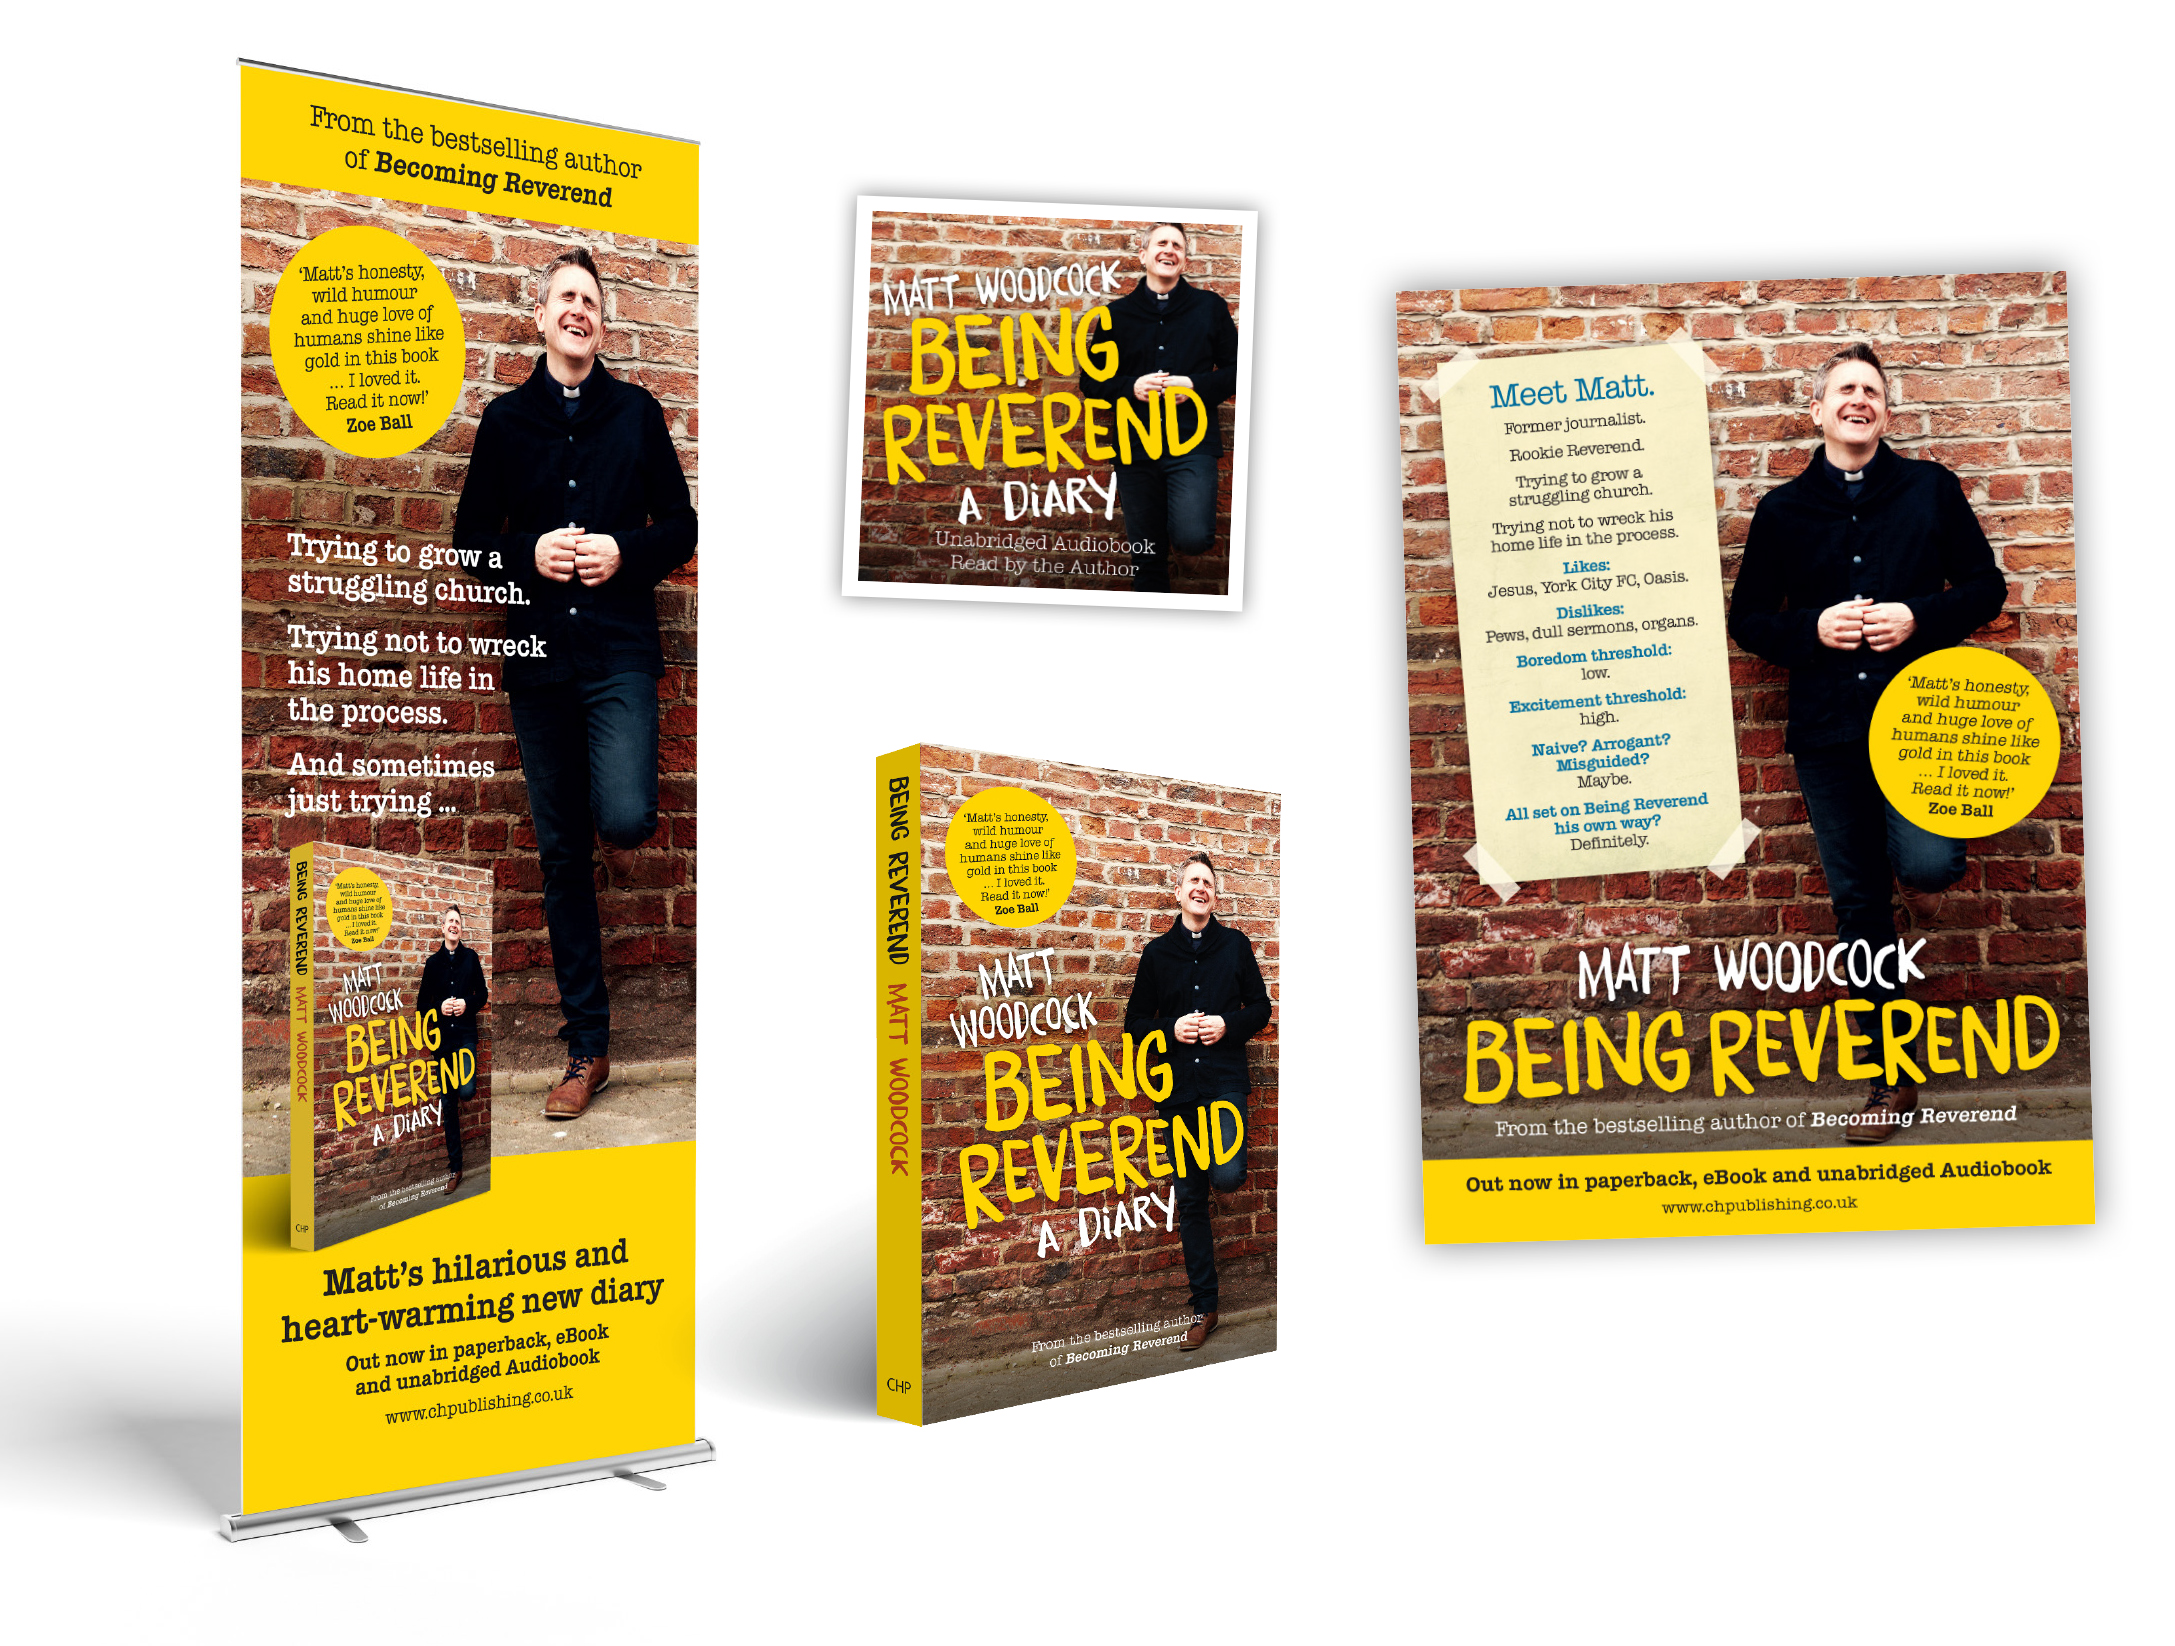 Being Reverend publicity and marketing material